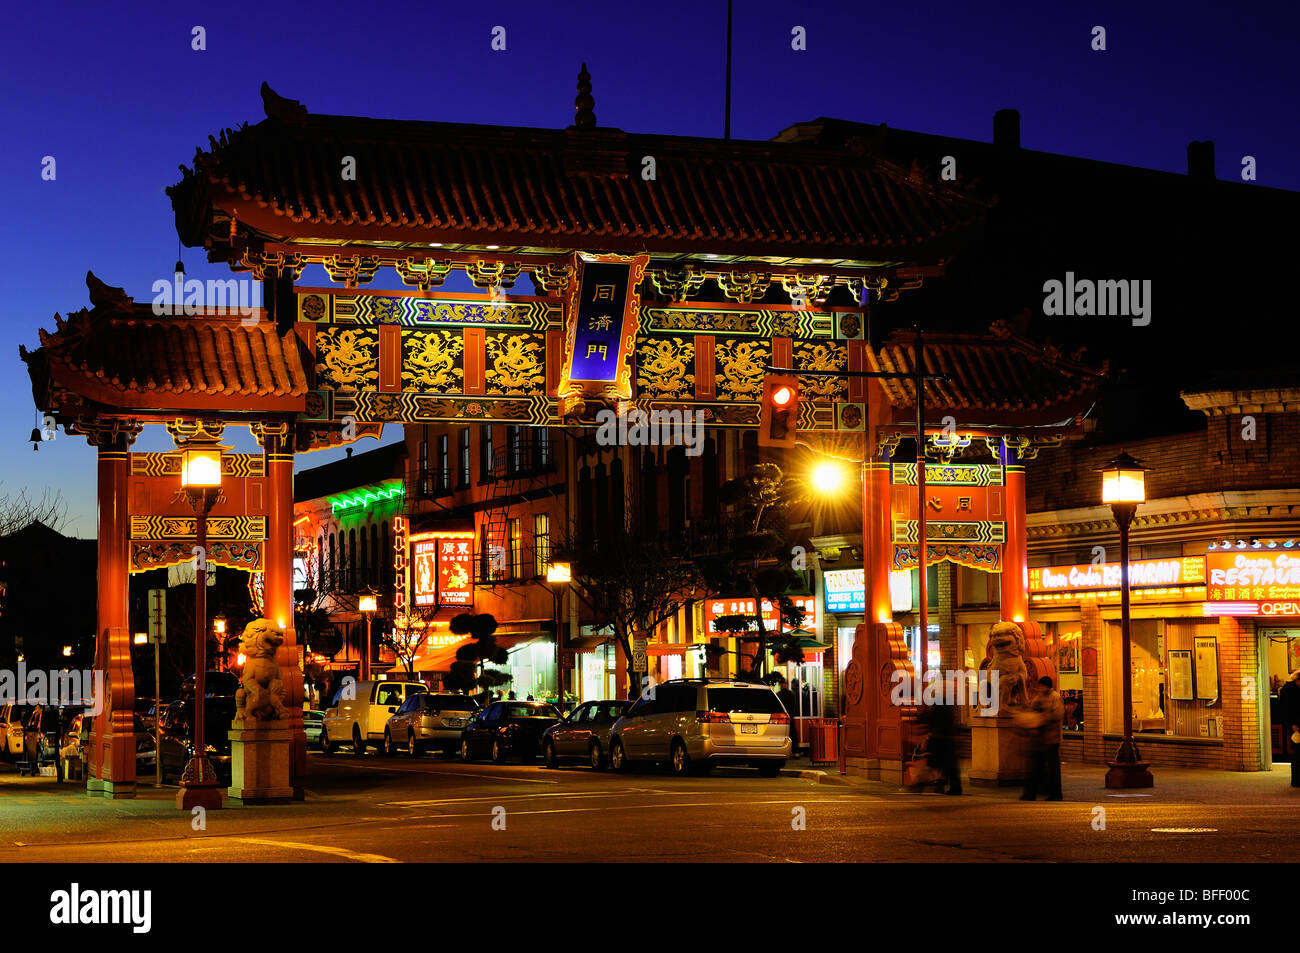 Gateway to Chinatown, the Gate of Harmonious Interest, Victoria BC - Stock Image